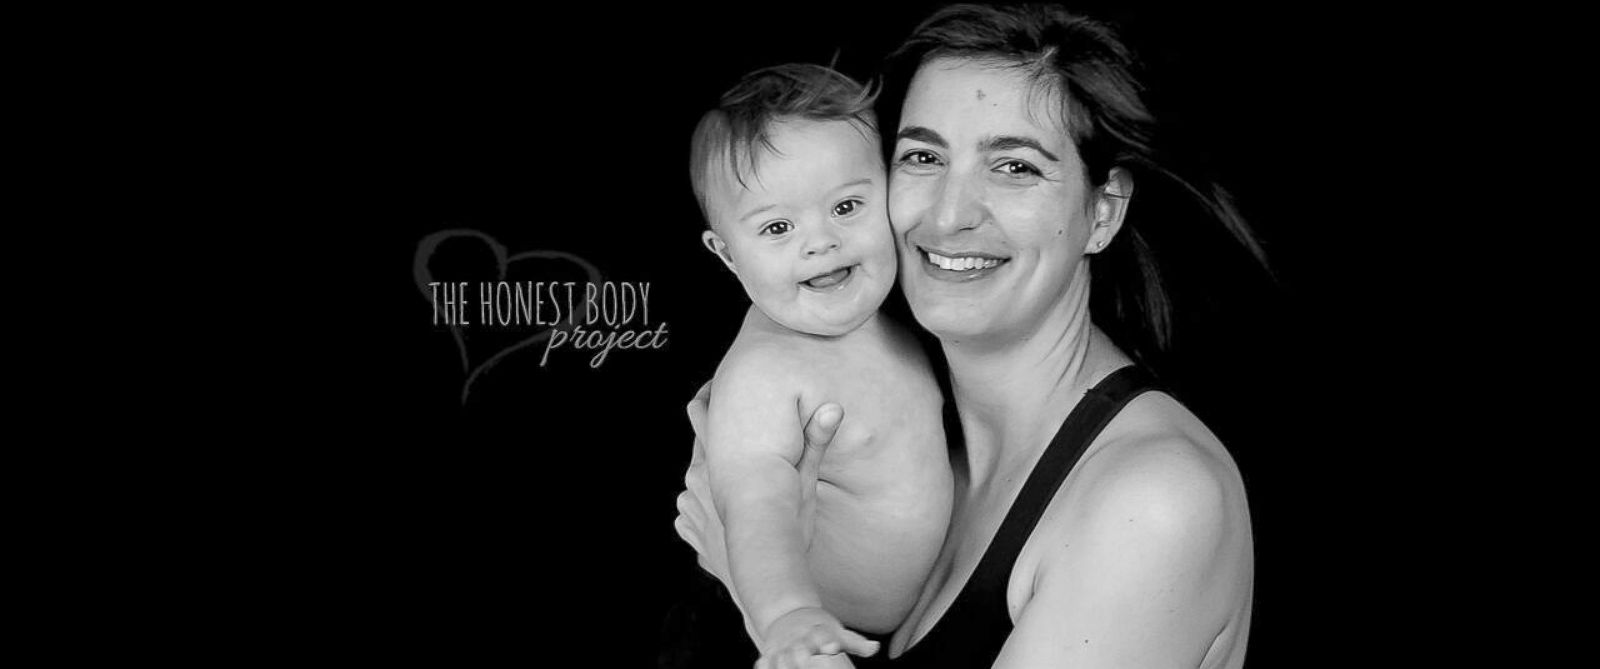 """PHOTO: The """"Defined by Our Hearts"""" photo series by The Honest Body Project celebrates the unbreakable bond between moms and their children with special needs."""